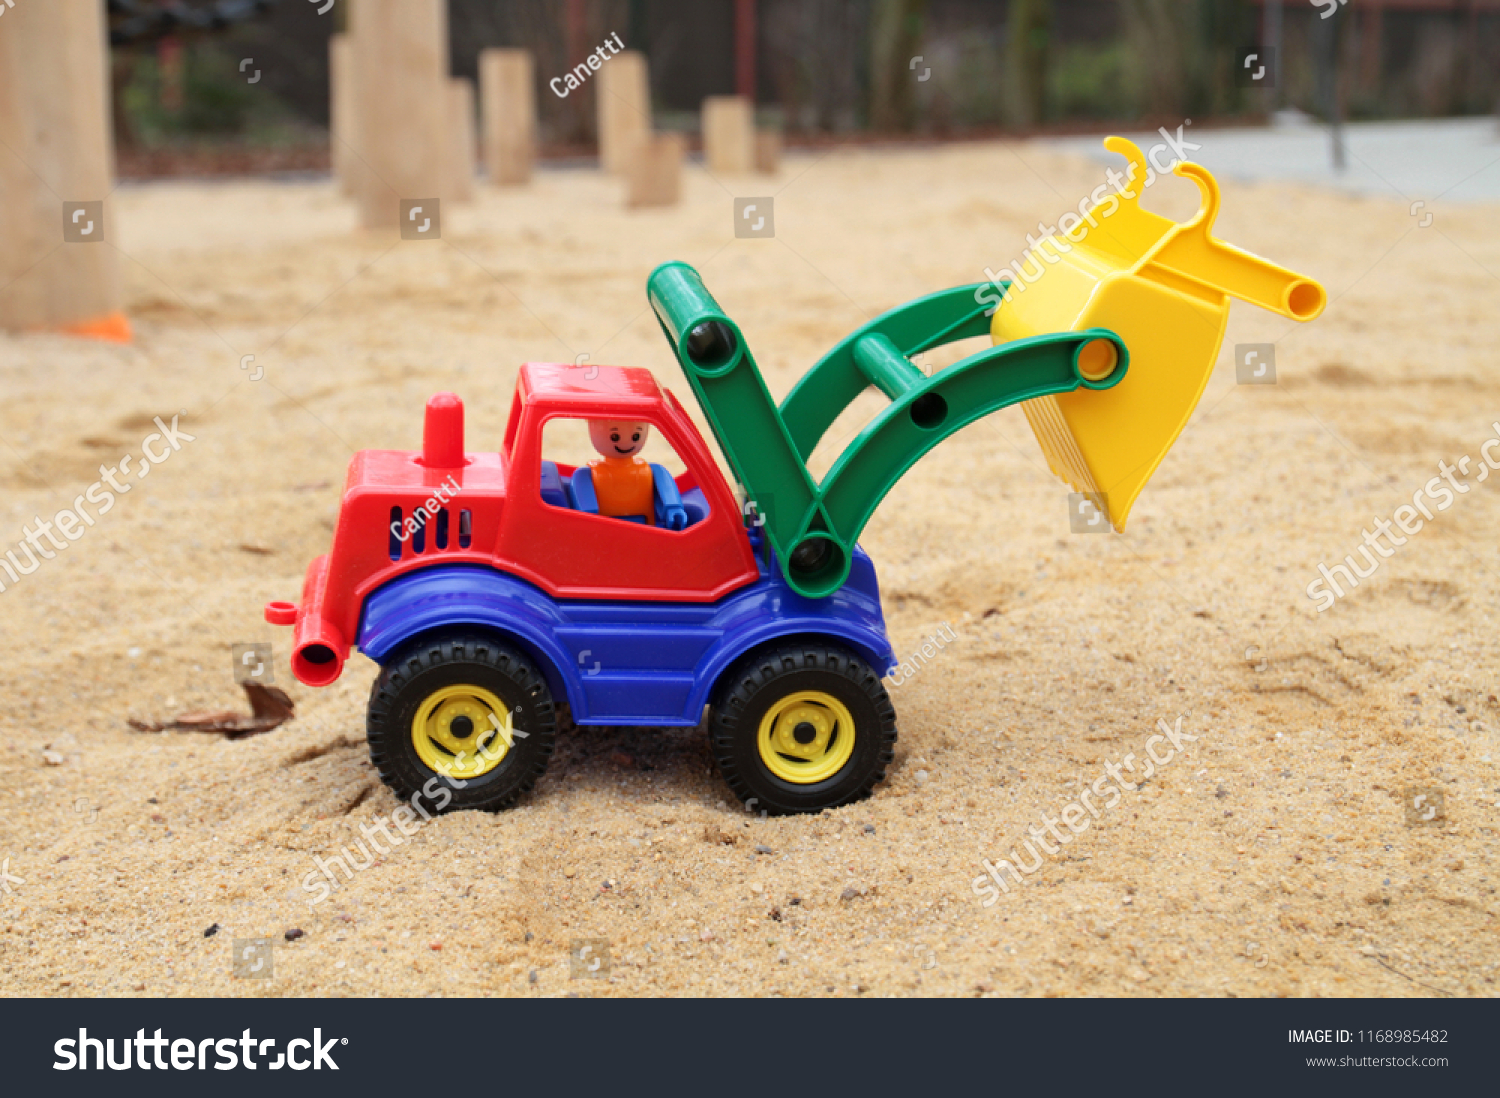 Digger Toy Toy Digger Sand Box Stock Photo Edit Now 1168985482 Shutterstock